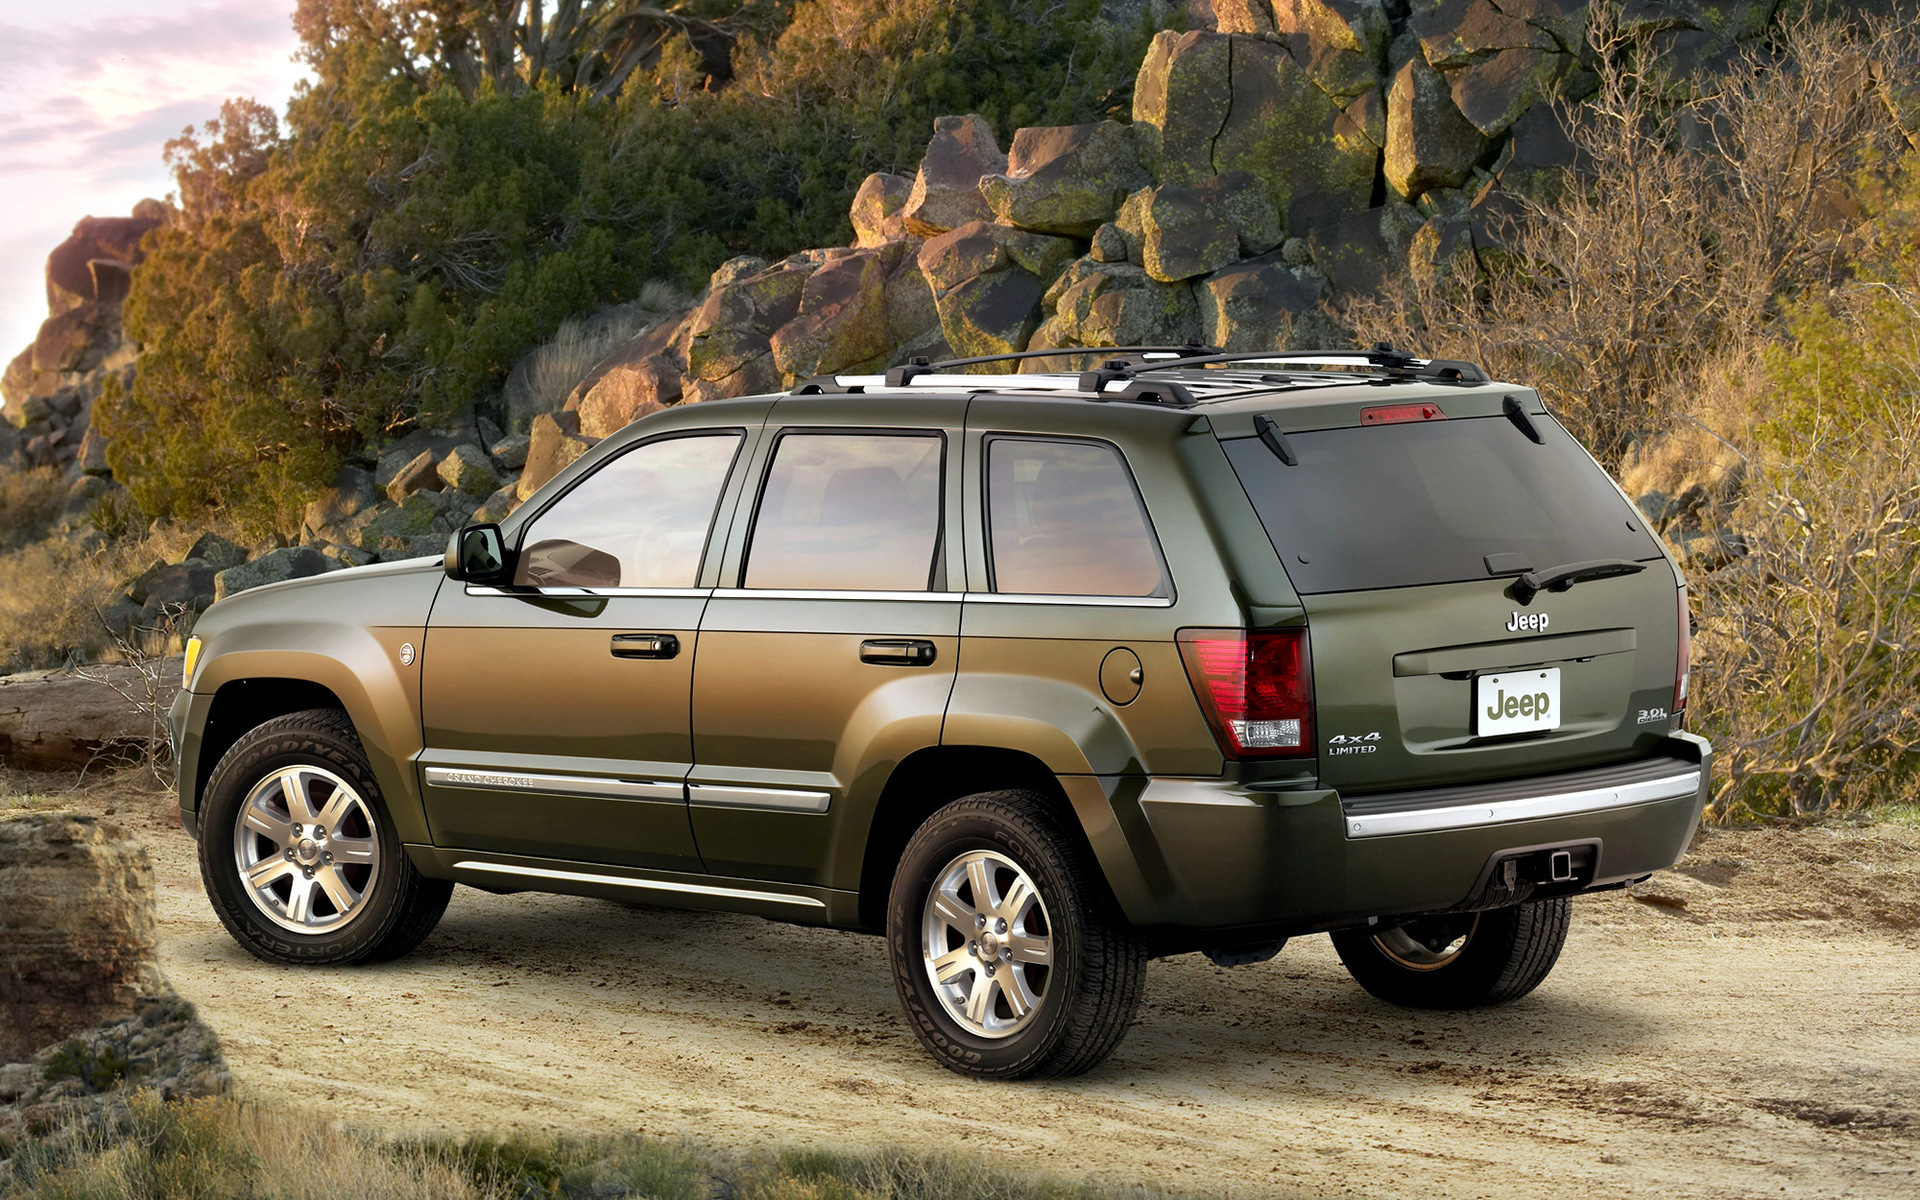 grand cherokee jeep 2008 wallpapers ws hd